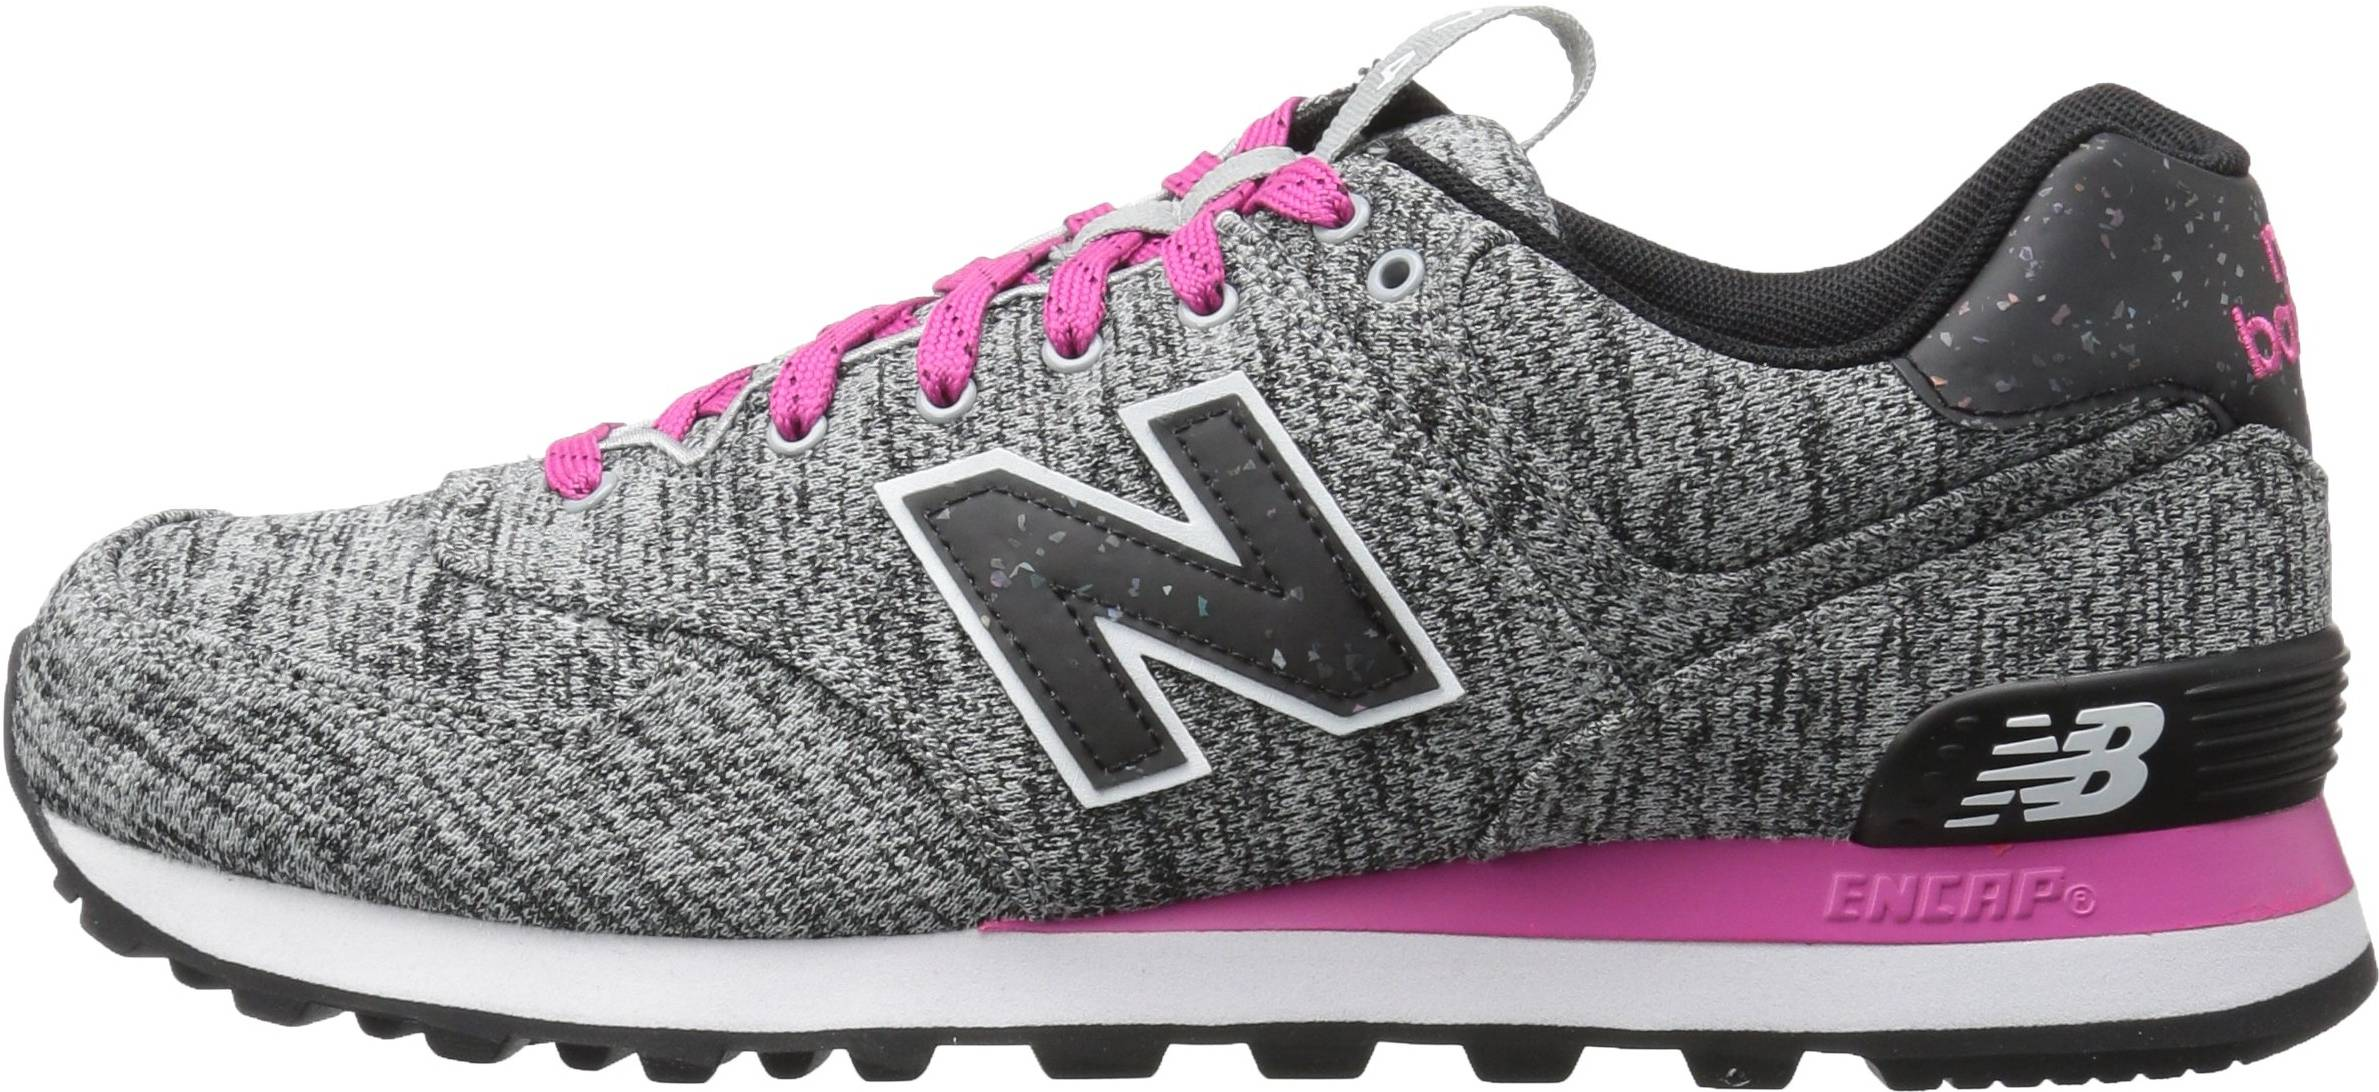 New Balance 574 Outdoor Escape